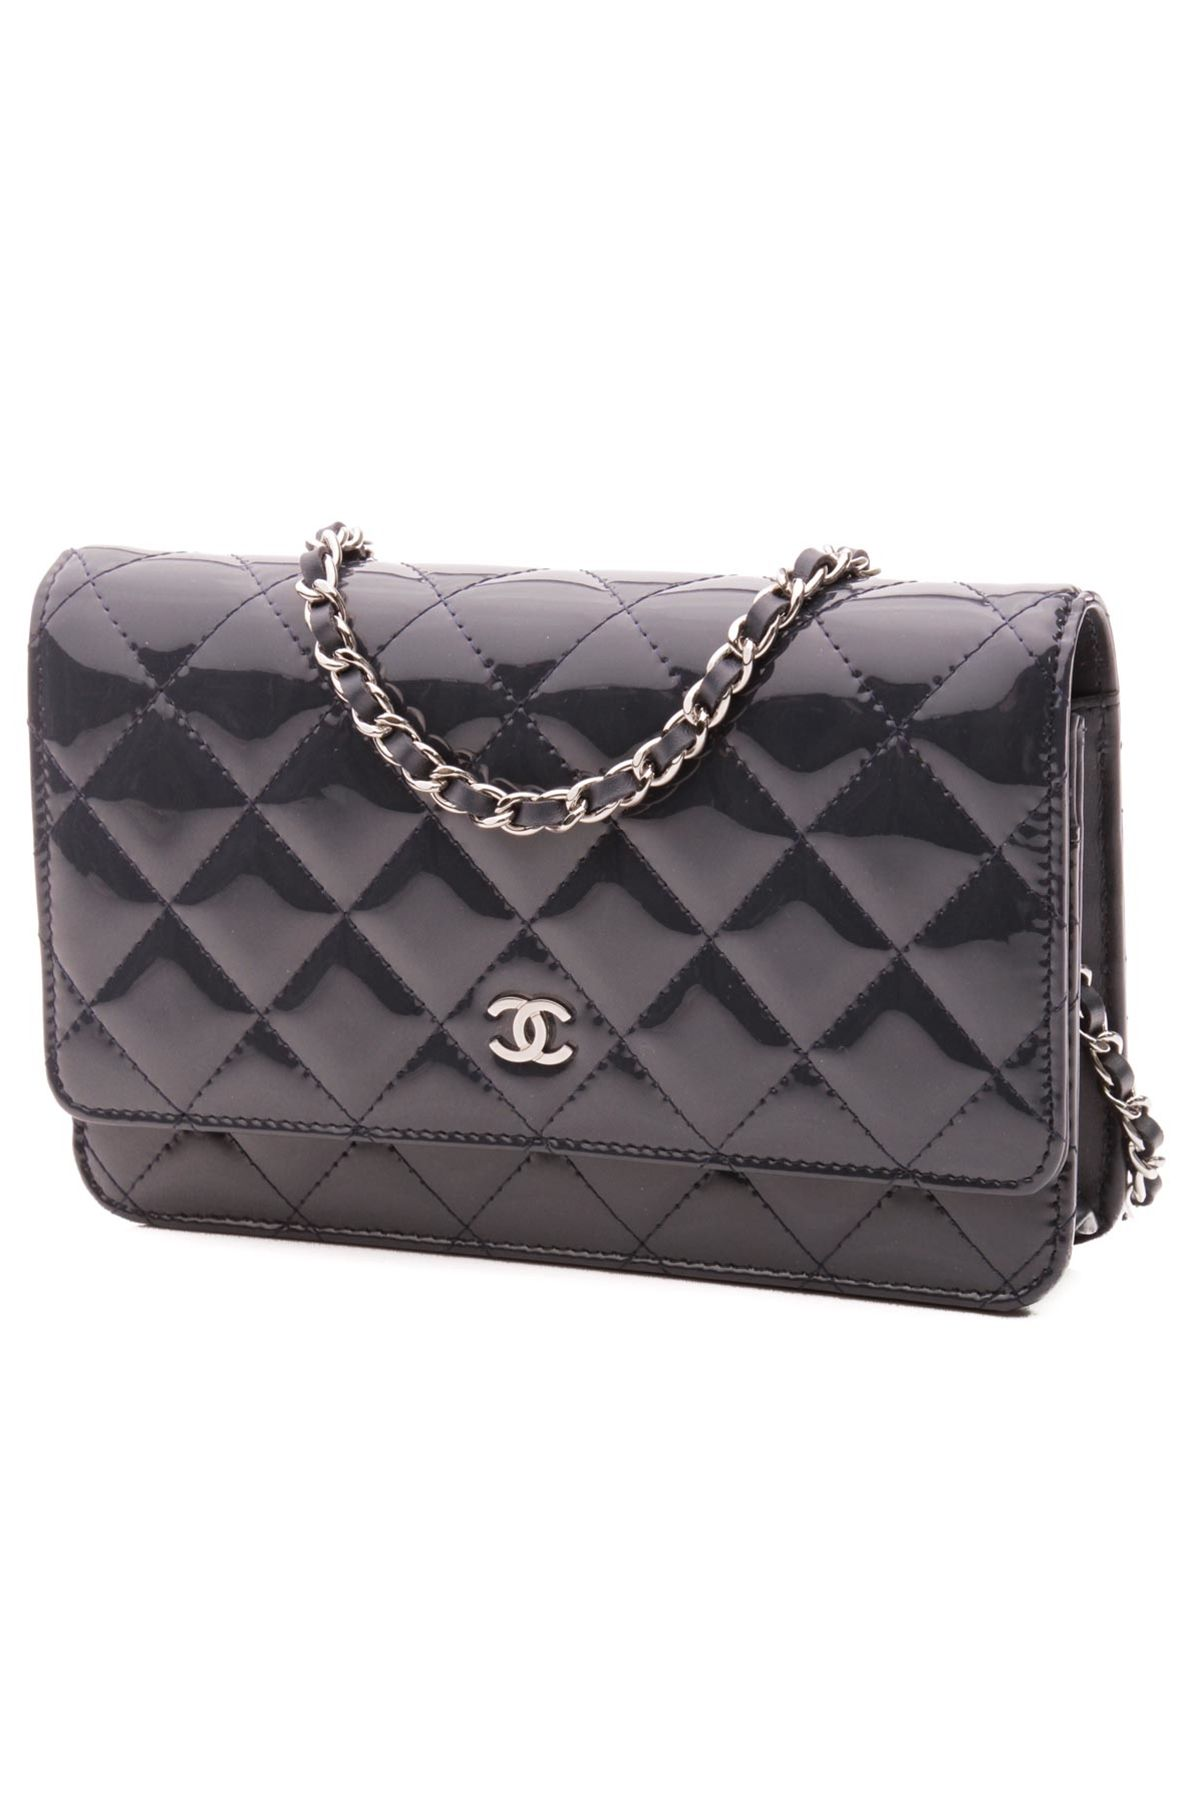 247e71e44b97 Timeless classic Chanel Brand, Coco Chanel, Define Fashion, Shopping Chanel,  Timeless Classic